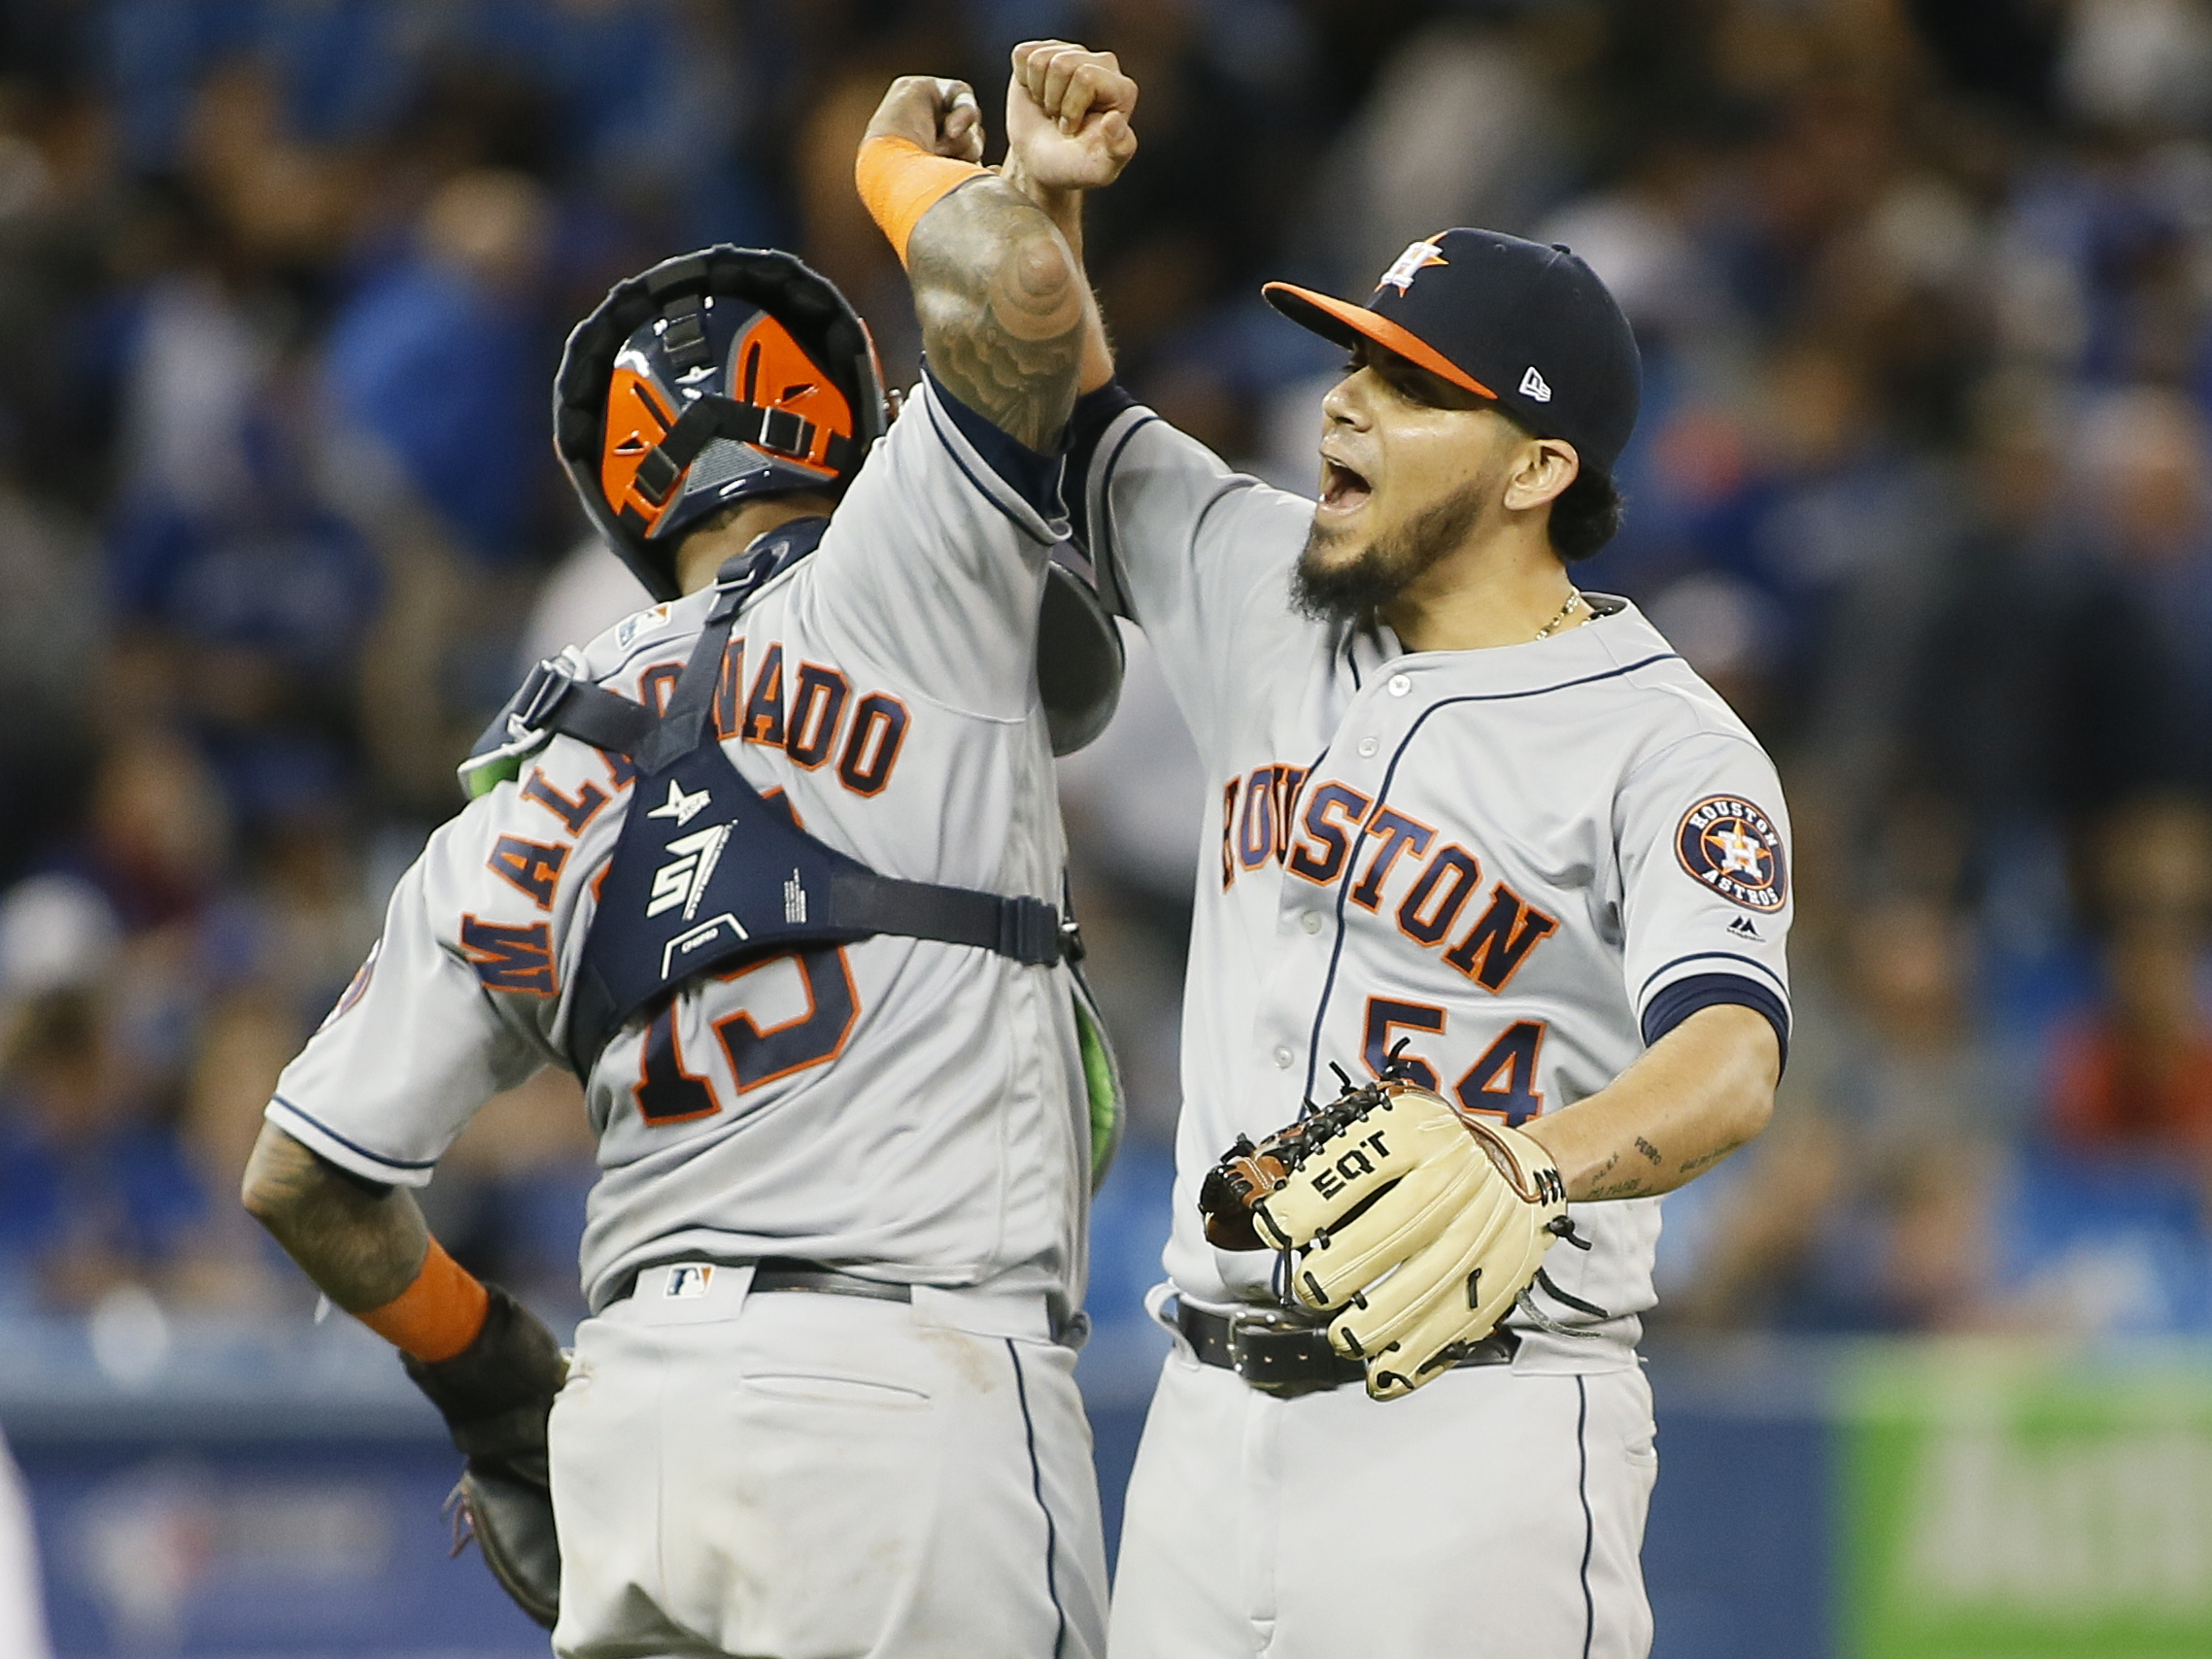 Thanks to an A's loss, the Astros clinch the AL West